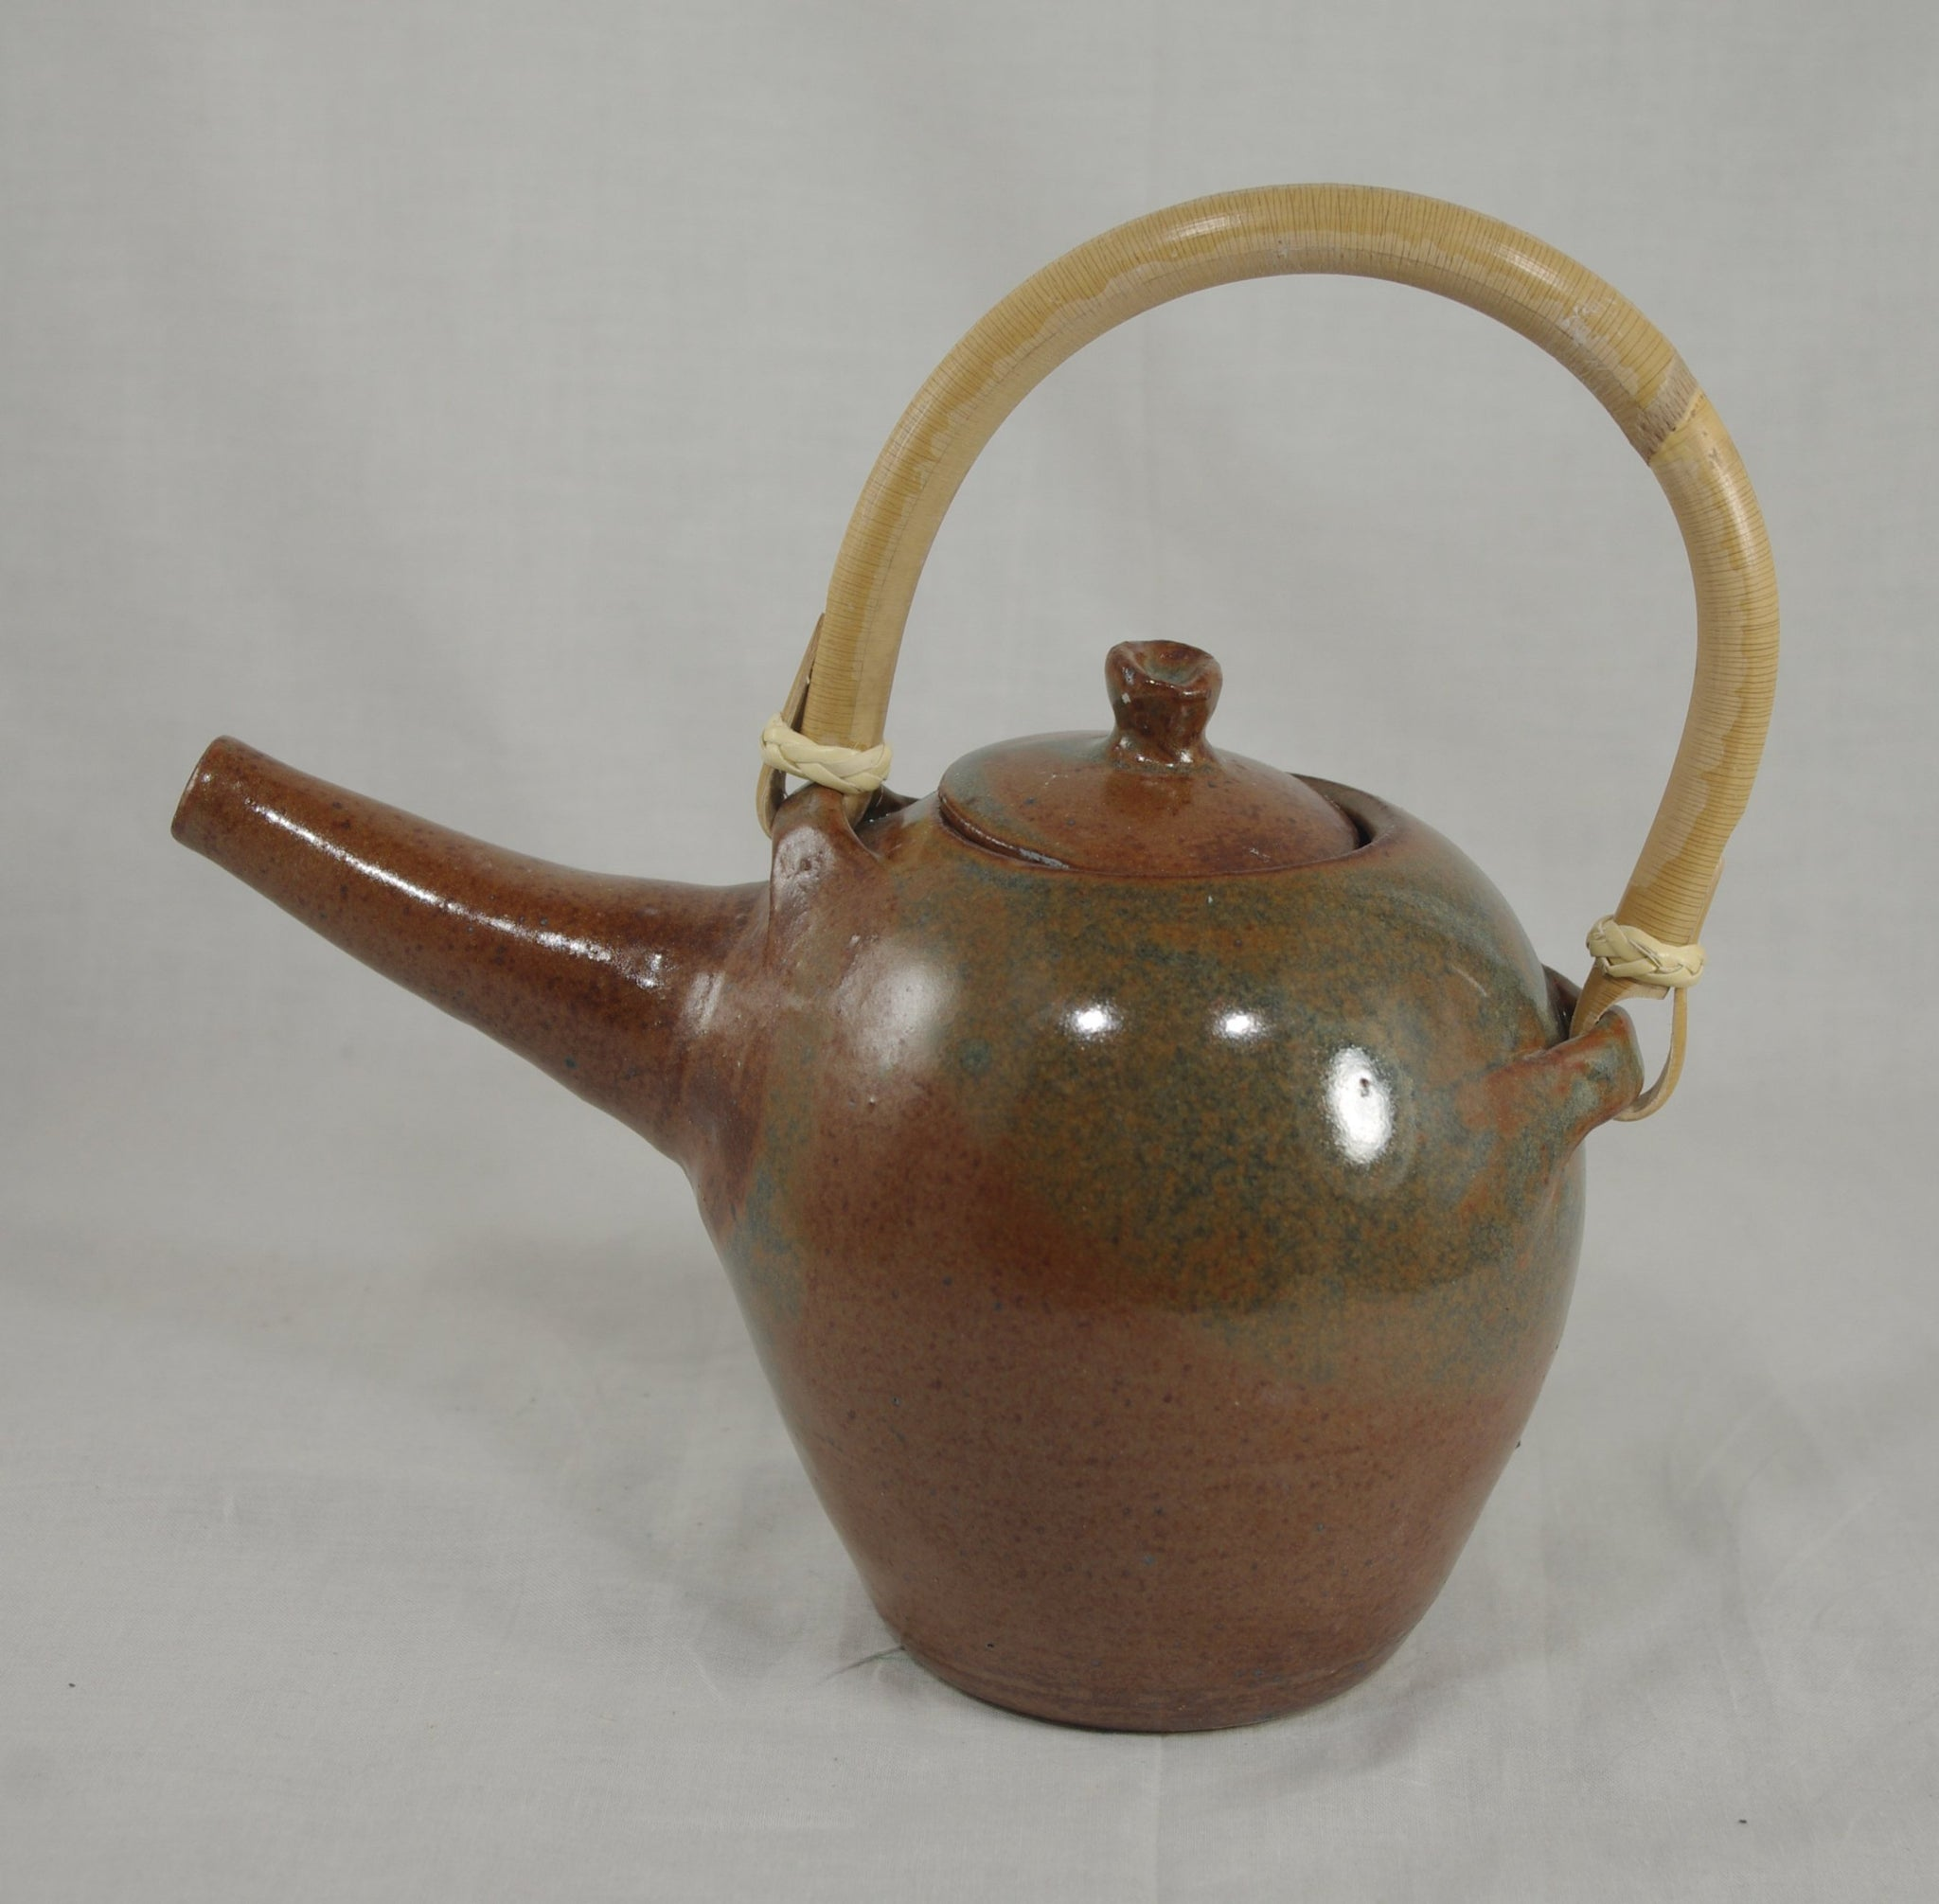 Tea Pot with Bamboo Handle # 9 - Skip Bleecker